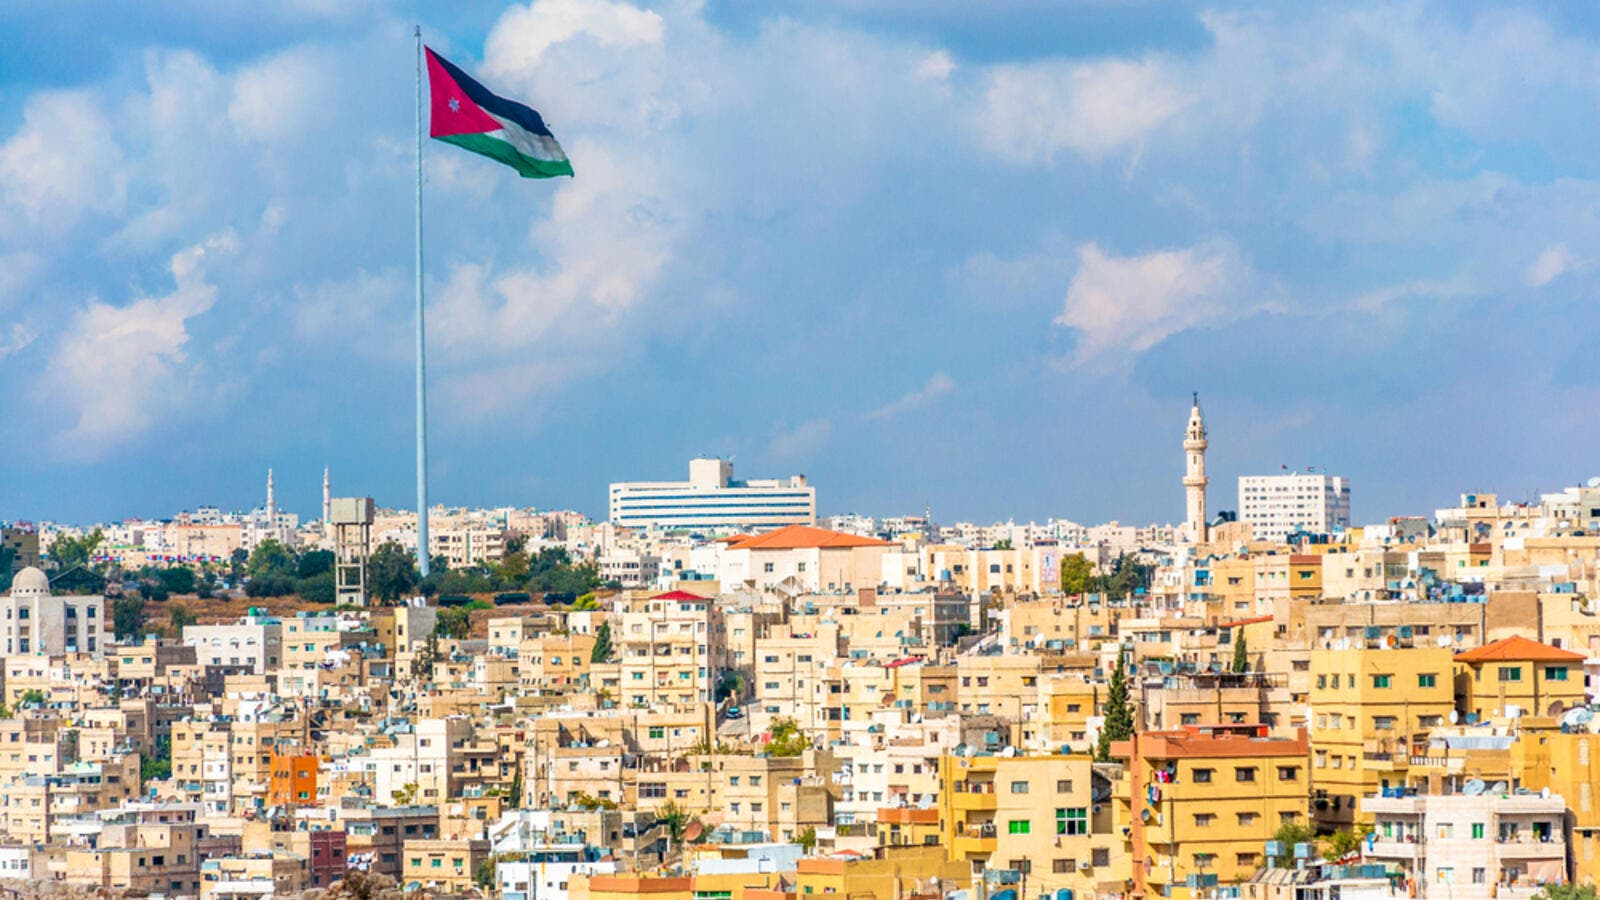 Jordan's real estate sector has been witnessing sharp decline in the last few years